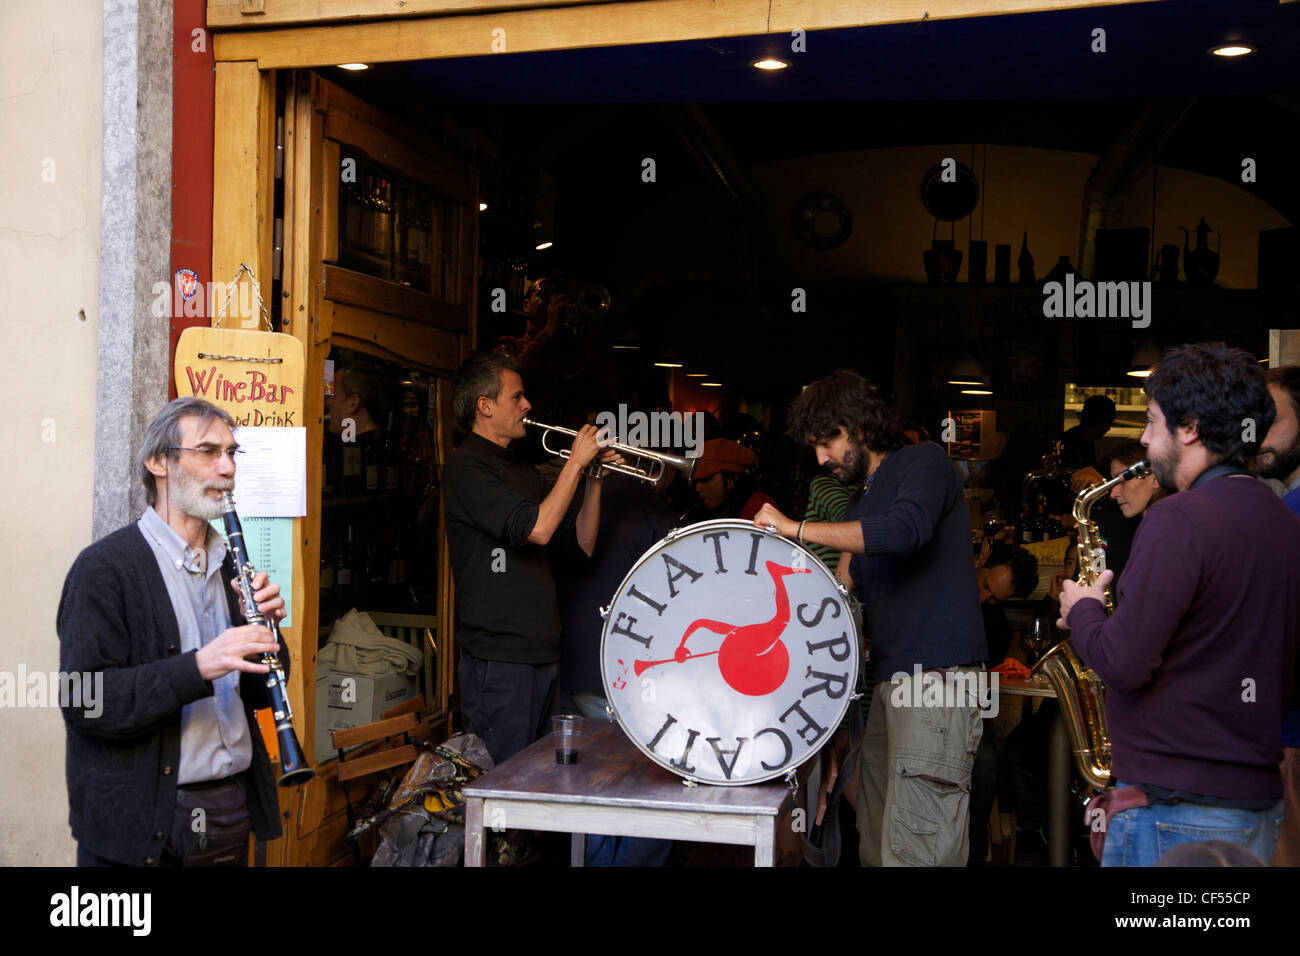 Fiati Sprecati, popular street band, perform in bar in Florence, Tuscany, Italy, Europe - Stock Image